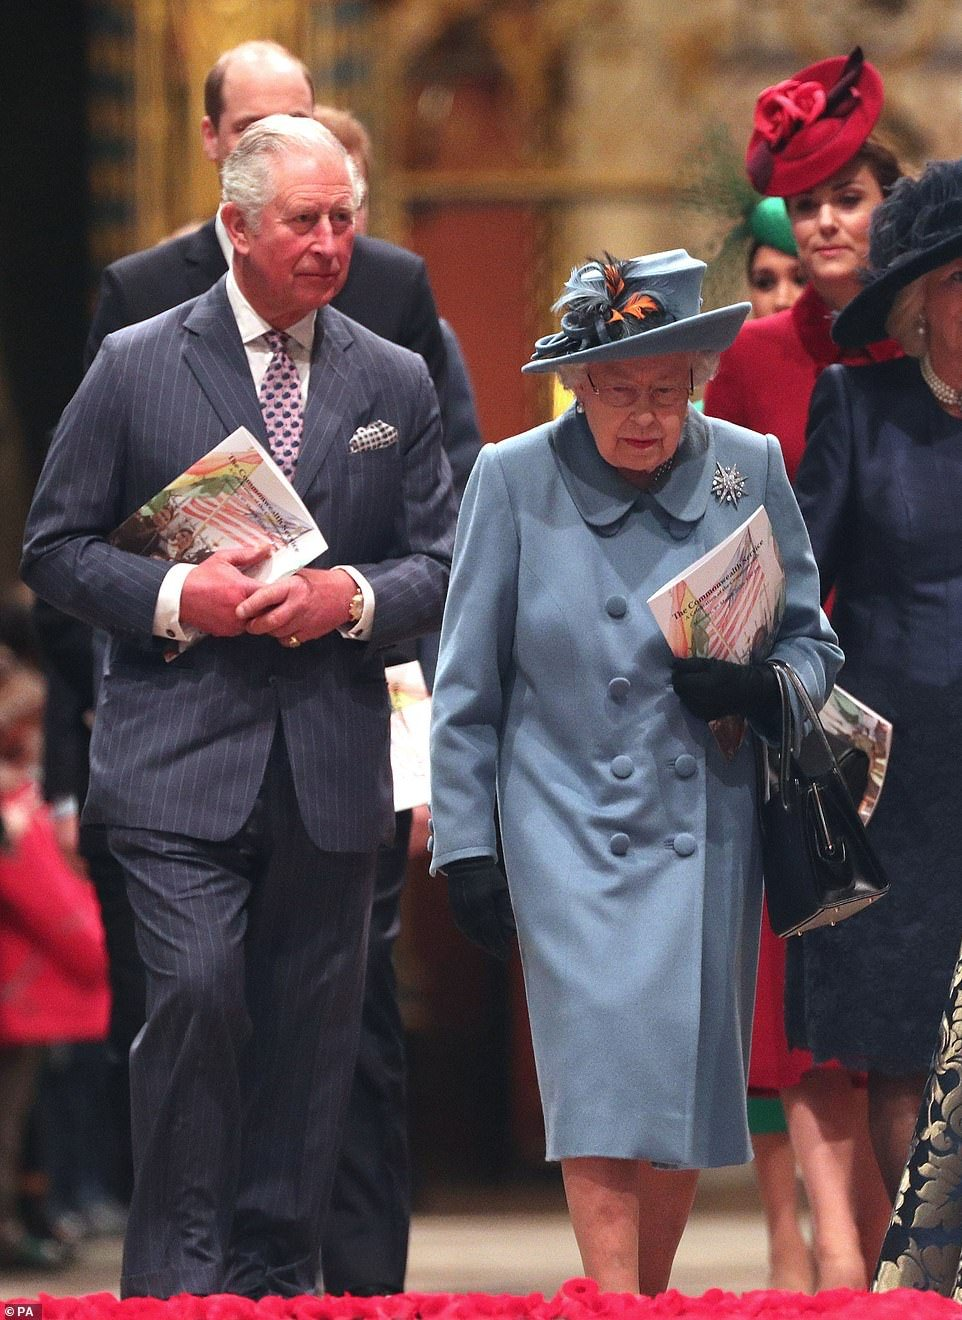 Charles was last seen with the Queen on March 9 at the Commonwealth Service at Westminster Abbey and saw her again on March 12 - 24 hours before his doctor claims he became contagious